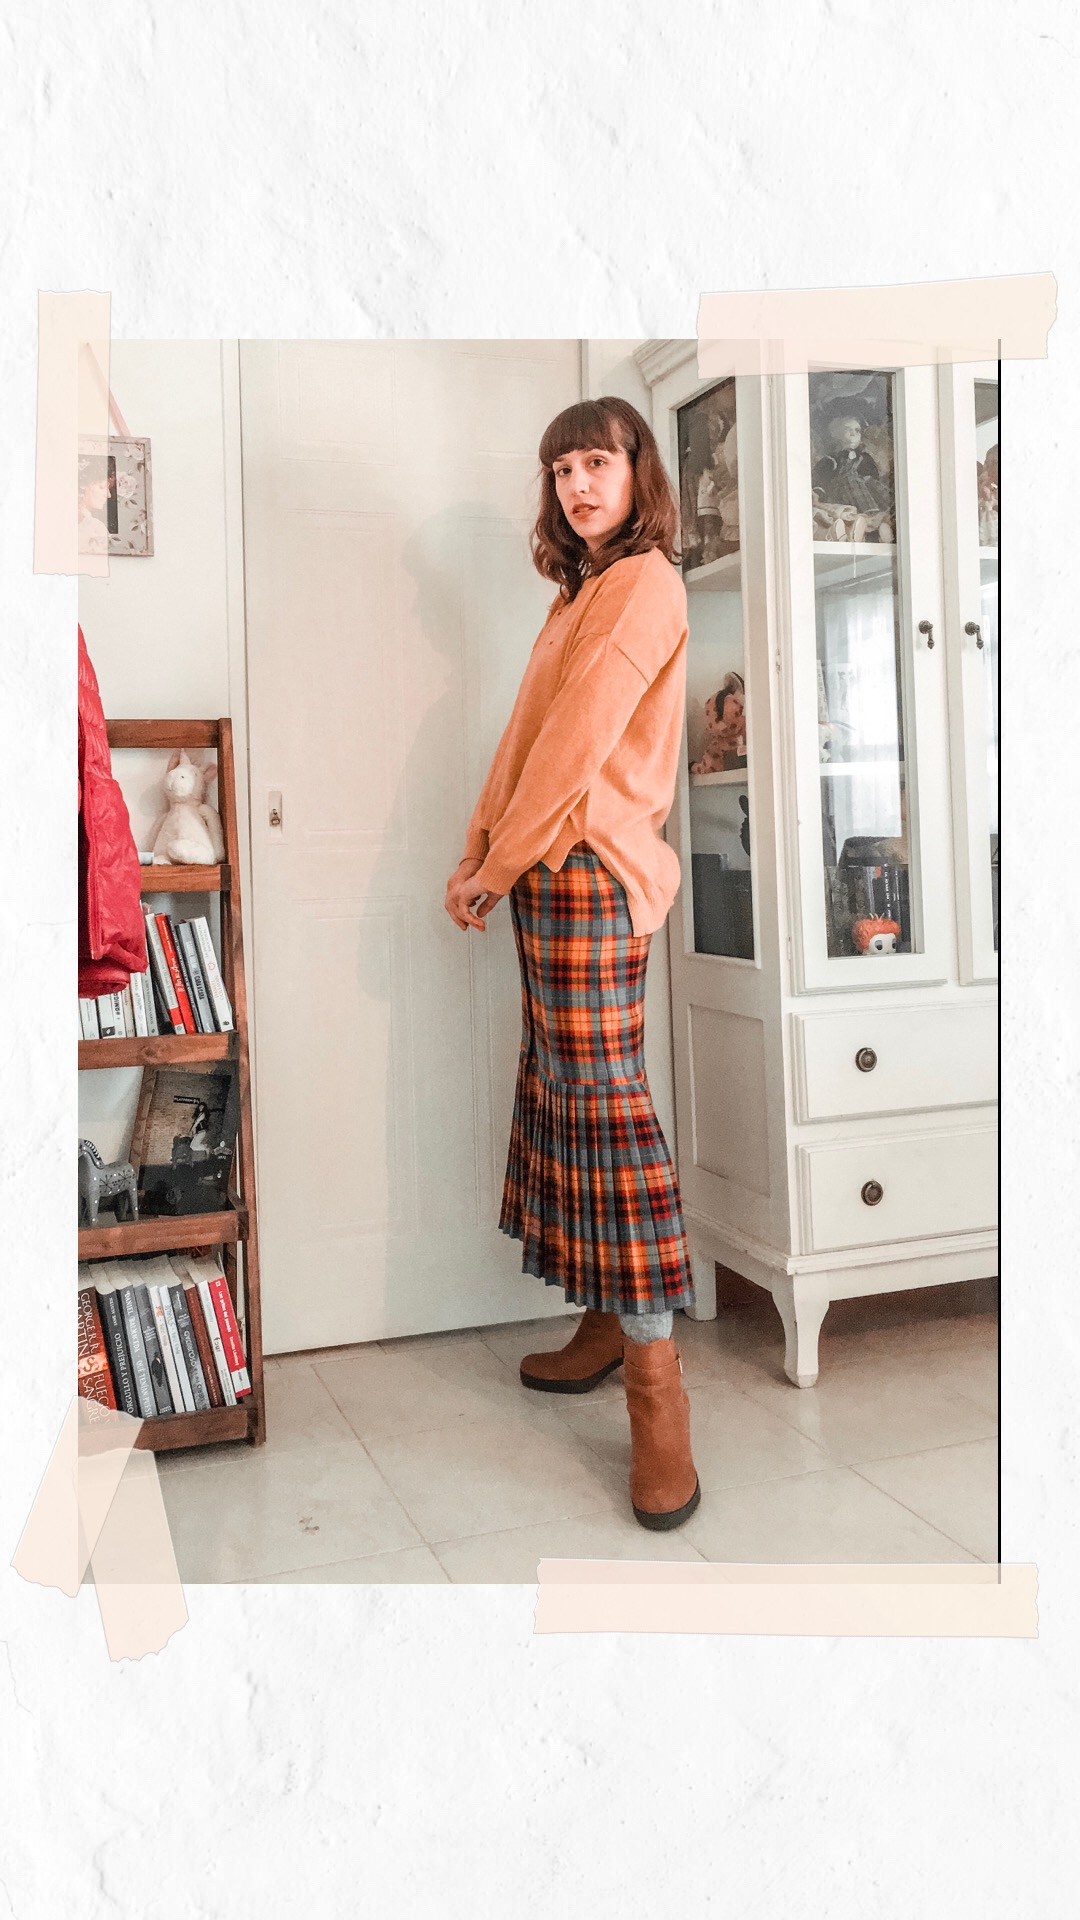 fashion, fashionista, moda, blogger argentina, fashion blogger, fashion blogger argentina, blogger, lifestyle blogger, ootd, outfit, style, look, outfit of the day, lookbook, what i wore, winter, winter style, aw style, winter style, outfit round up, ootd round up, winter fashion